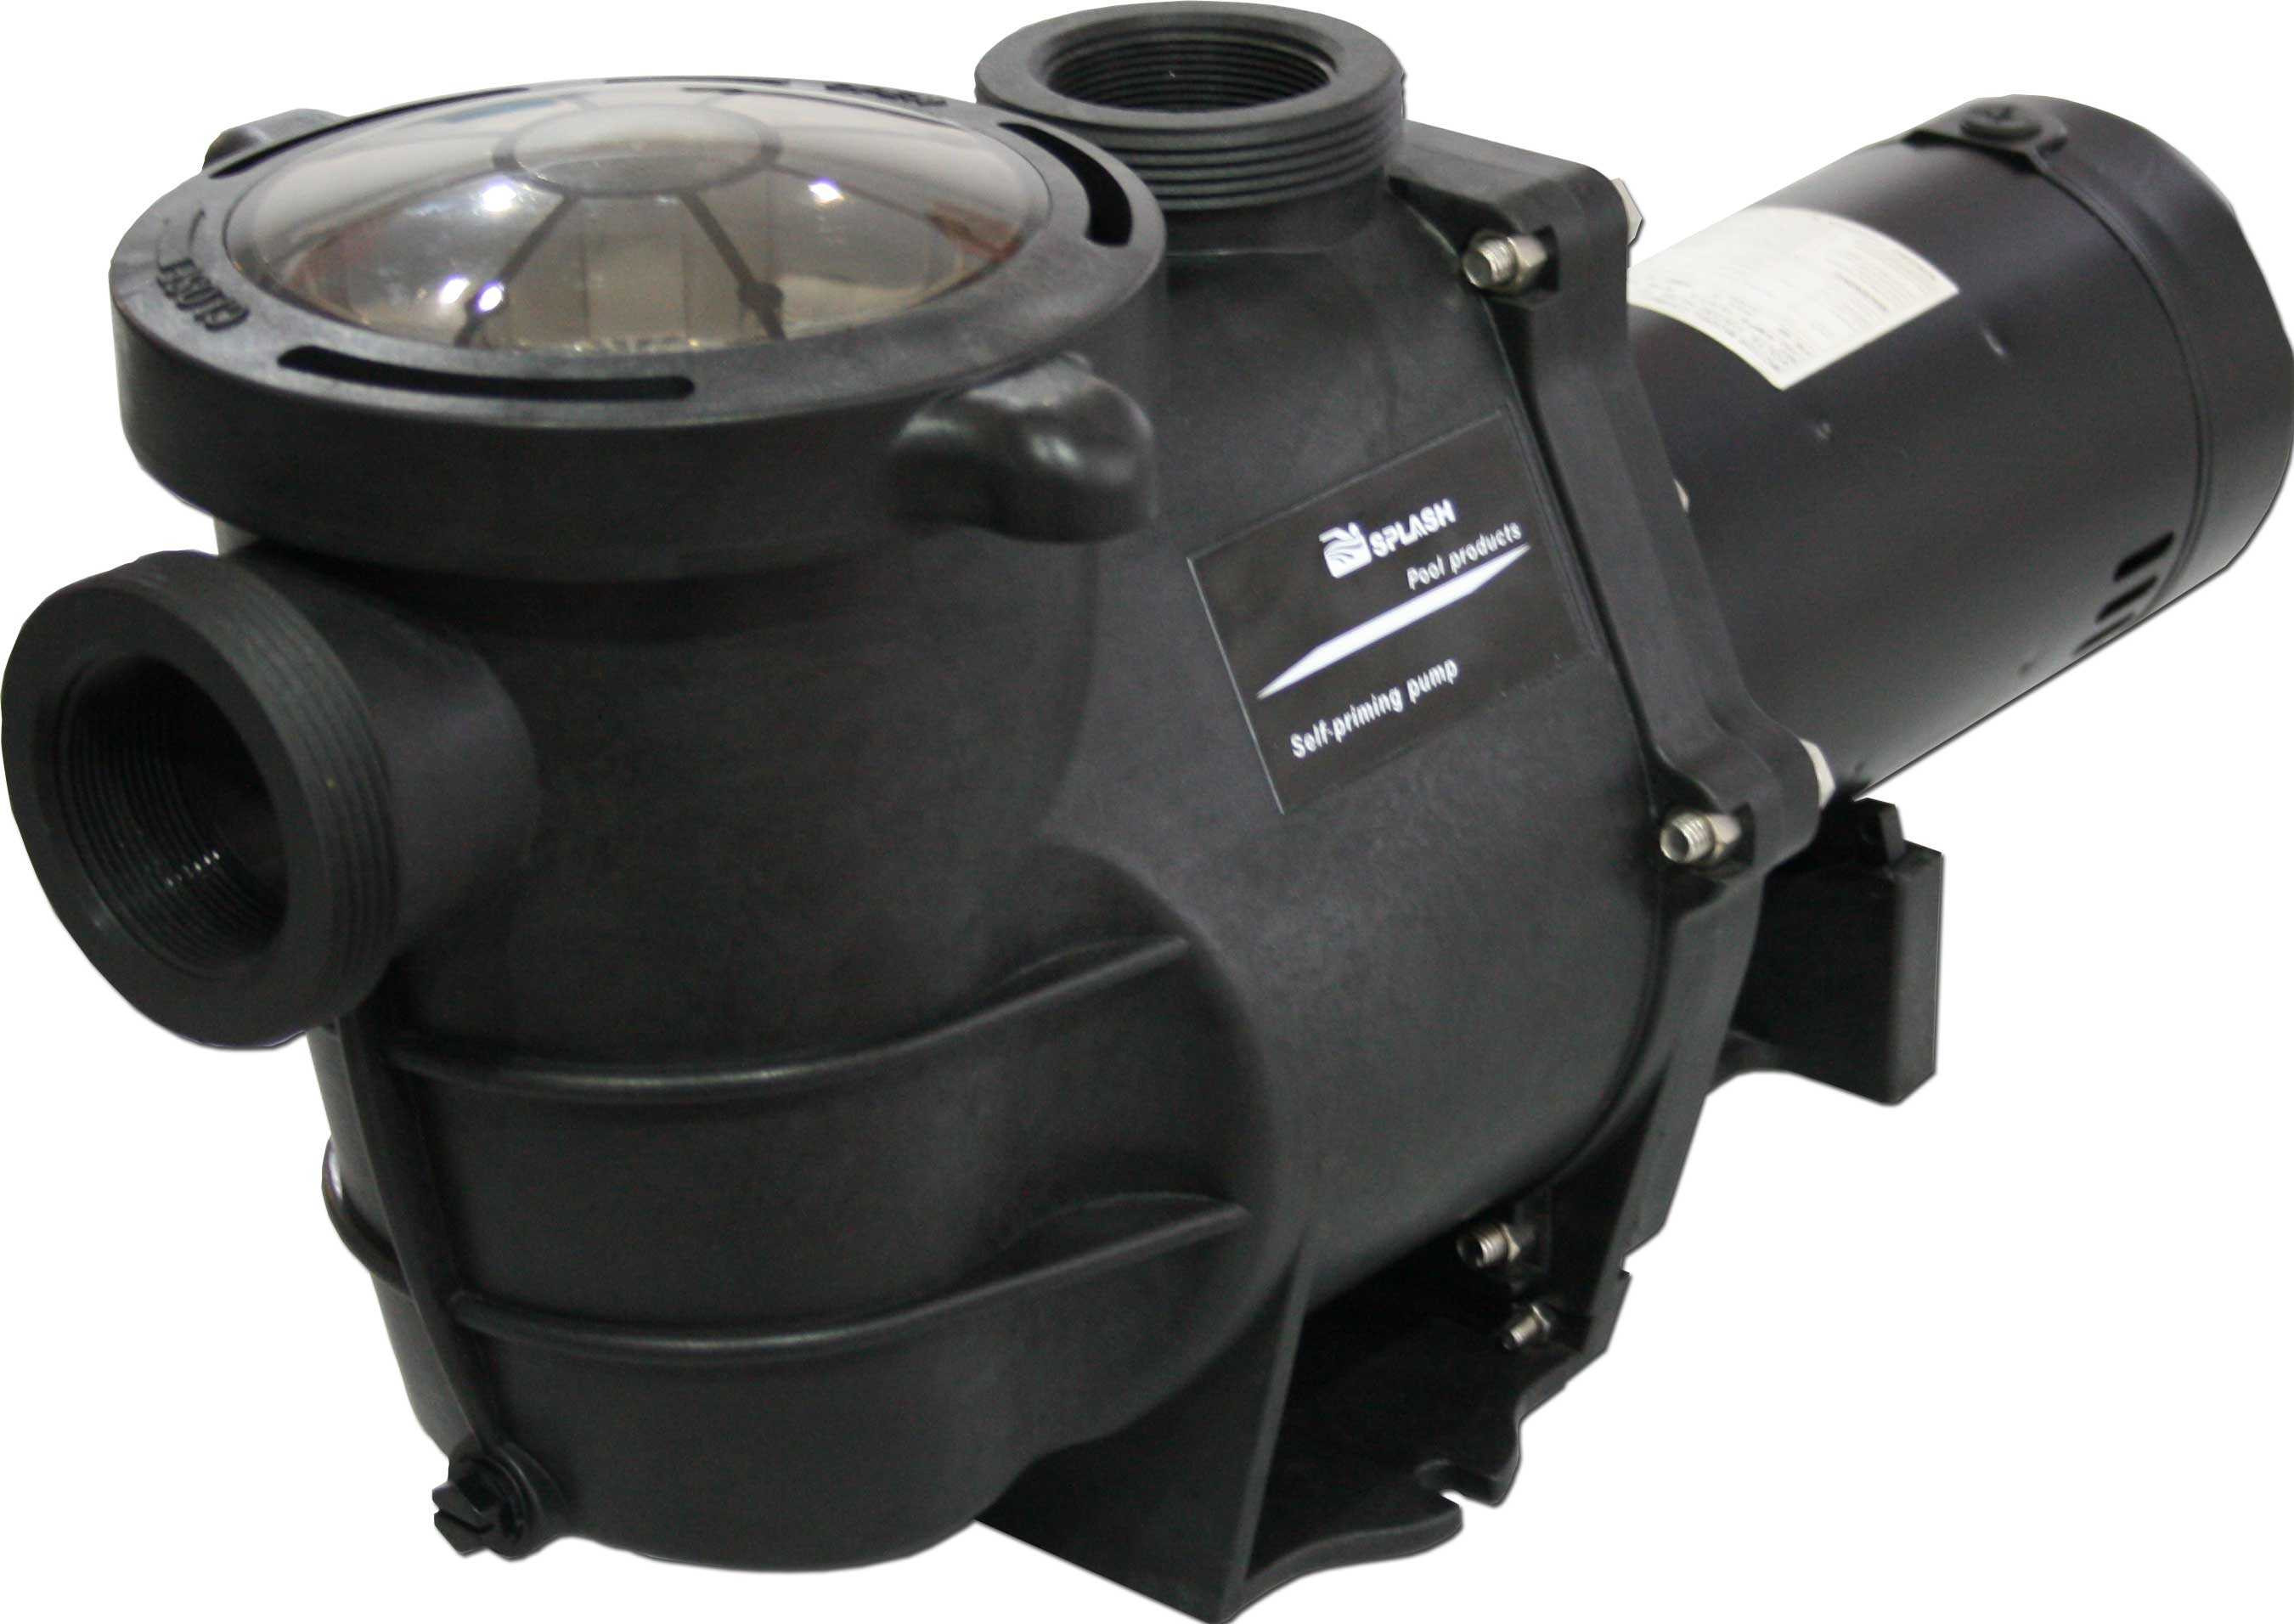 Best ideas about In Ground Pool Pump . Save or Pin Deluxe Energy Efficient 2 Speed Pump for In Ground Now.